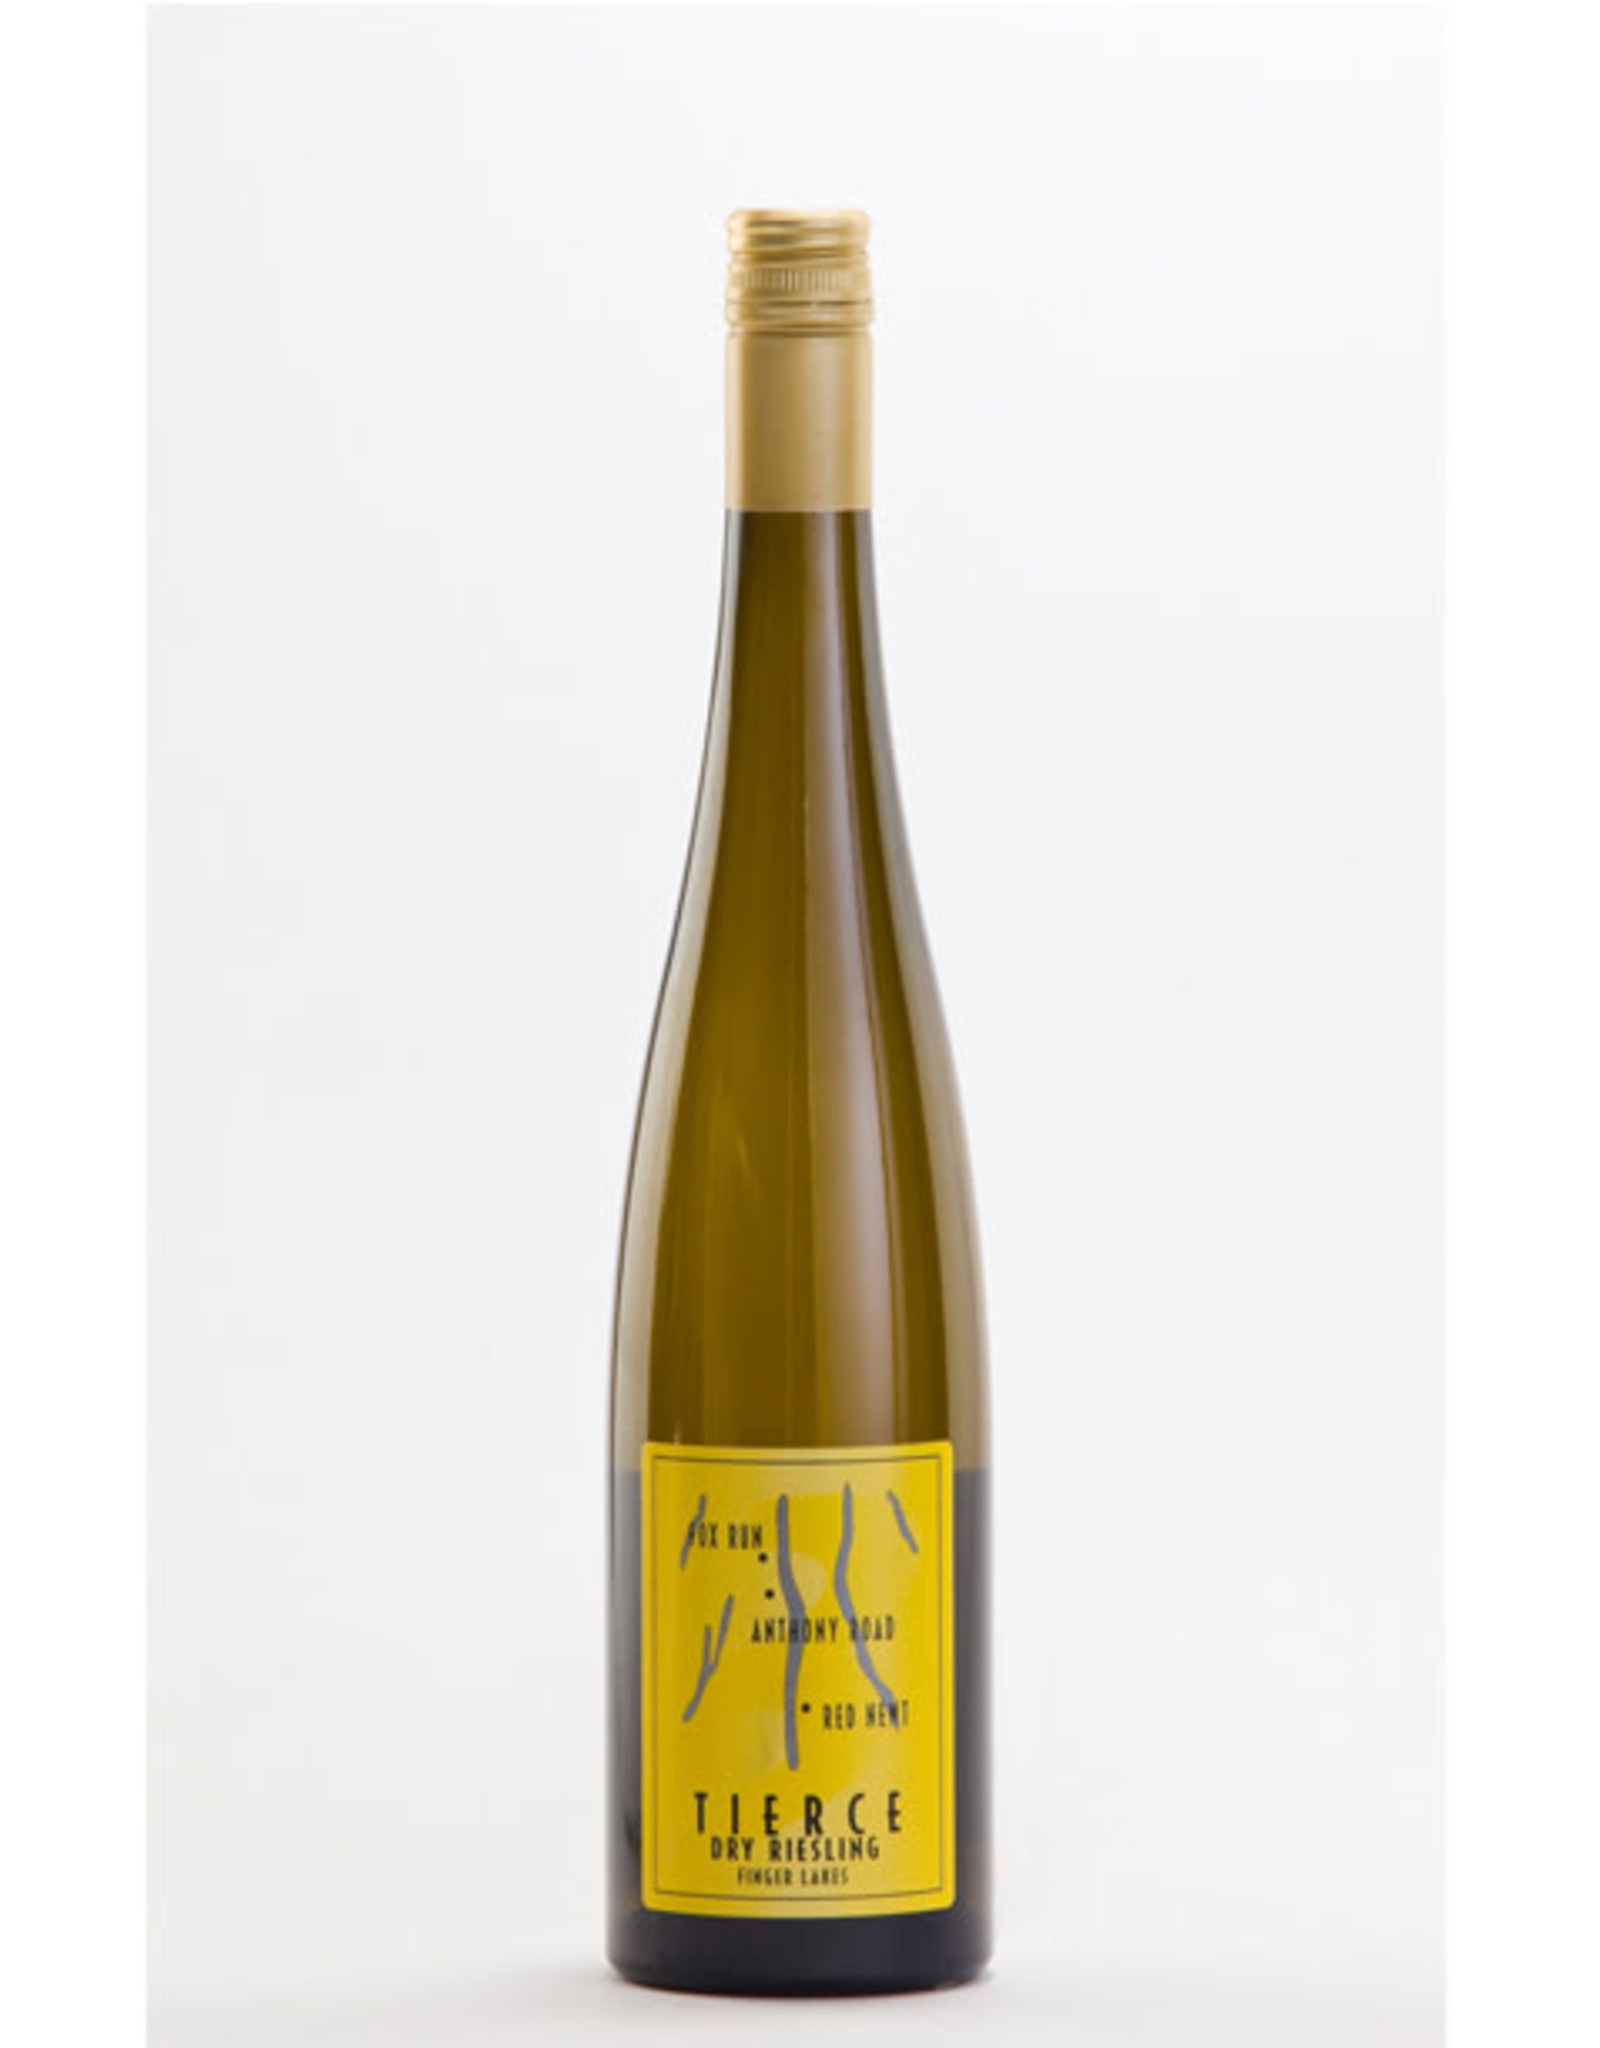 USA Anthony Road, Tierce Dry Riesling